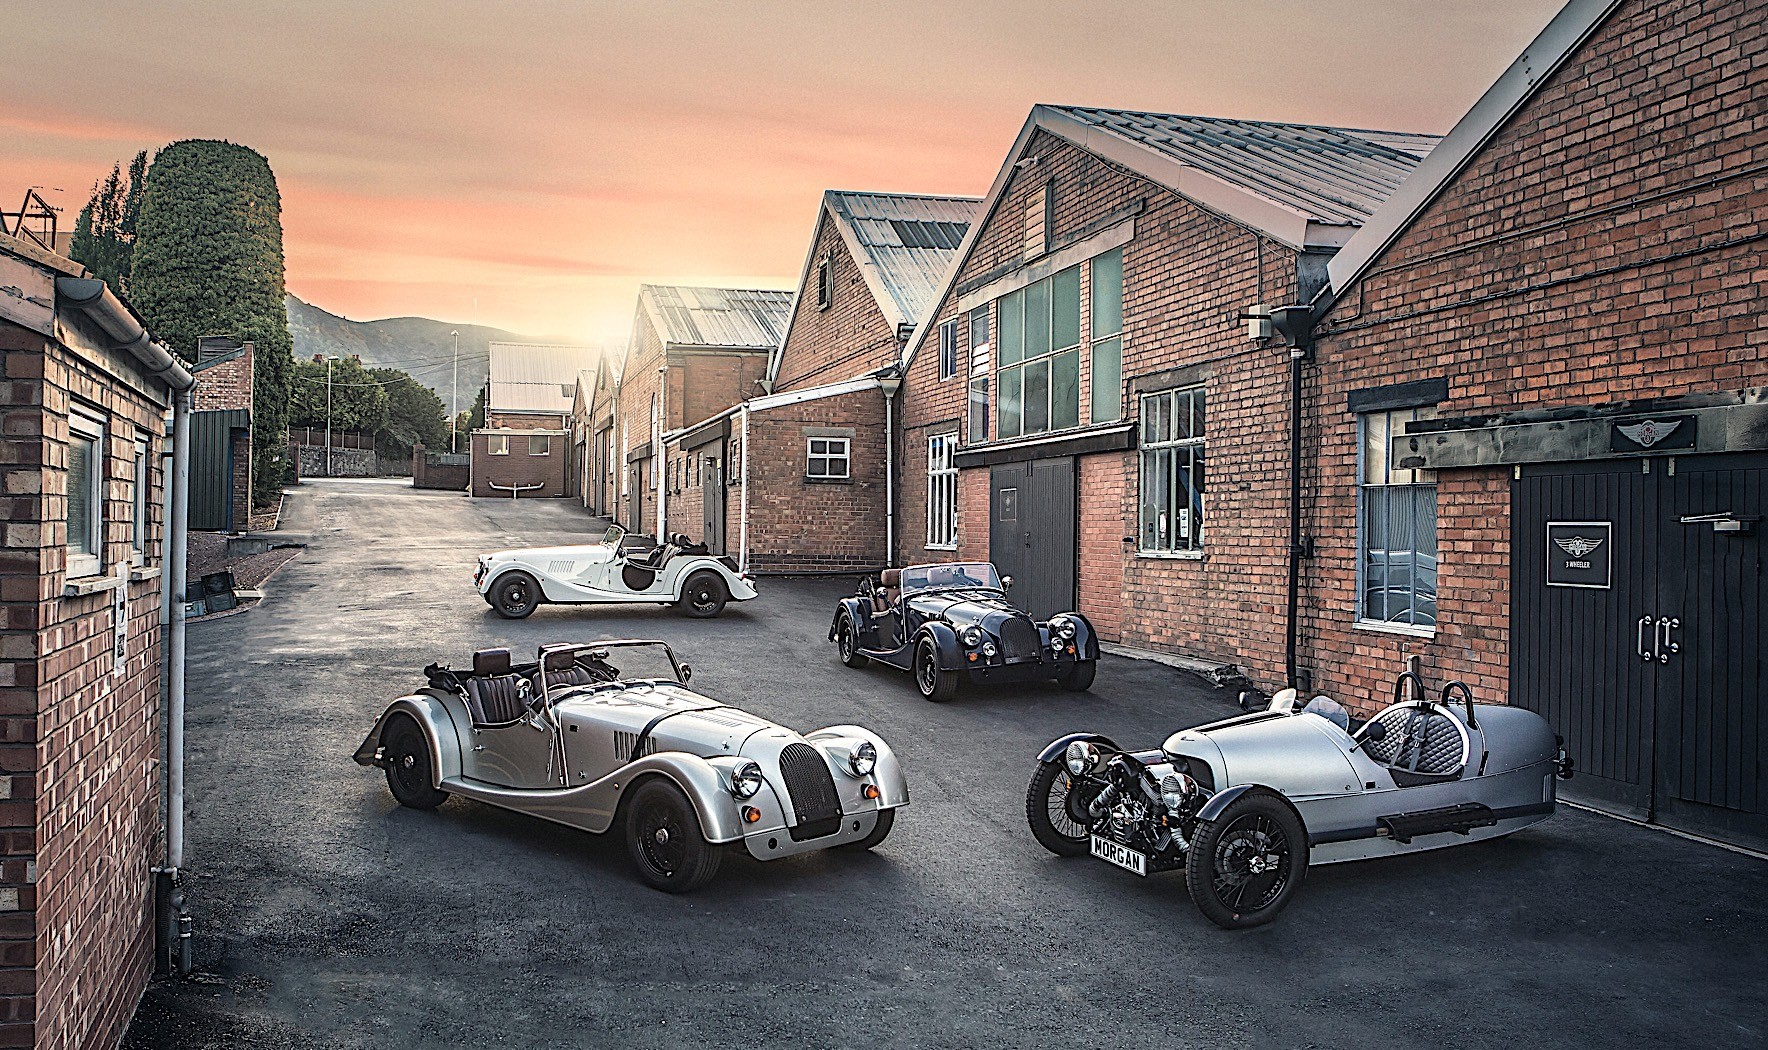 anniversary-morgan-cars-bring-back-the-prestige-of-old-for-free_5